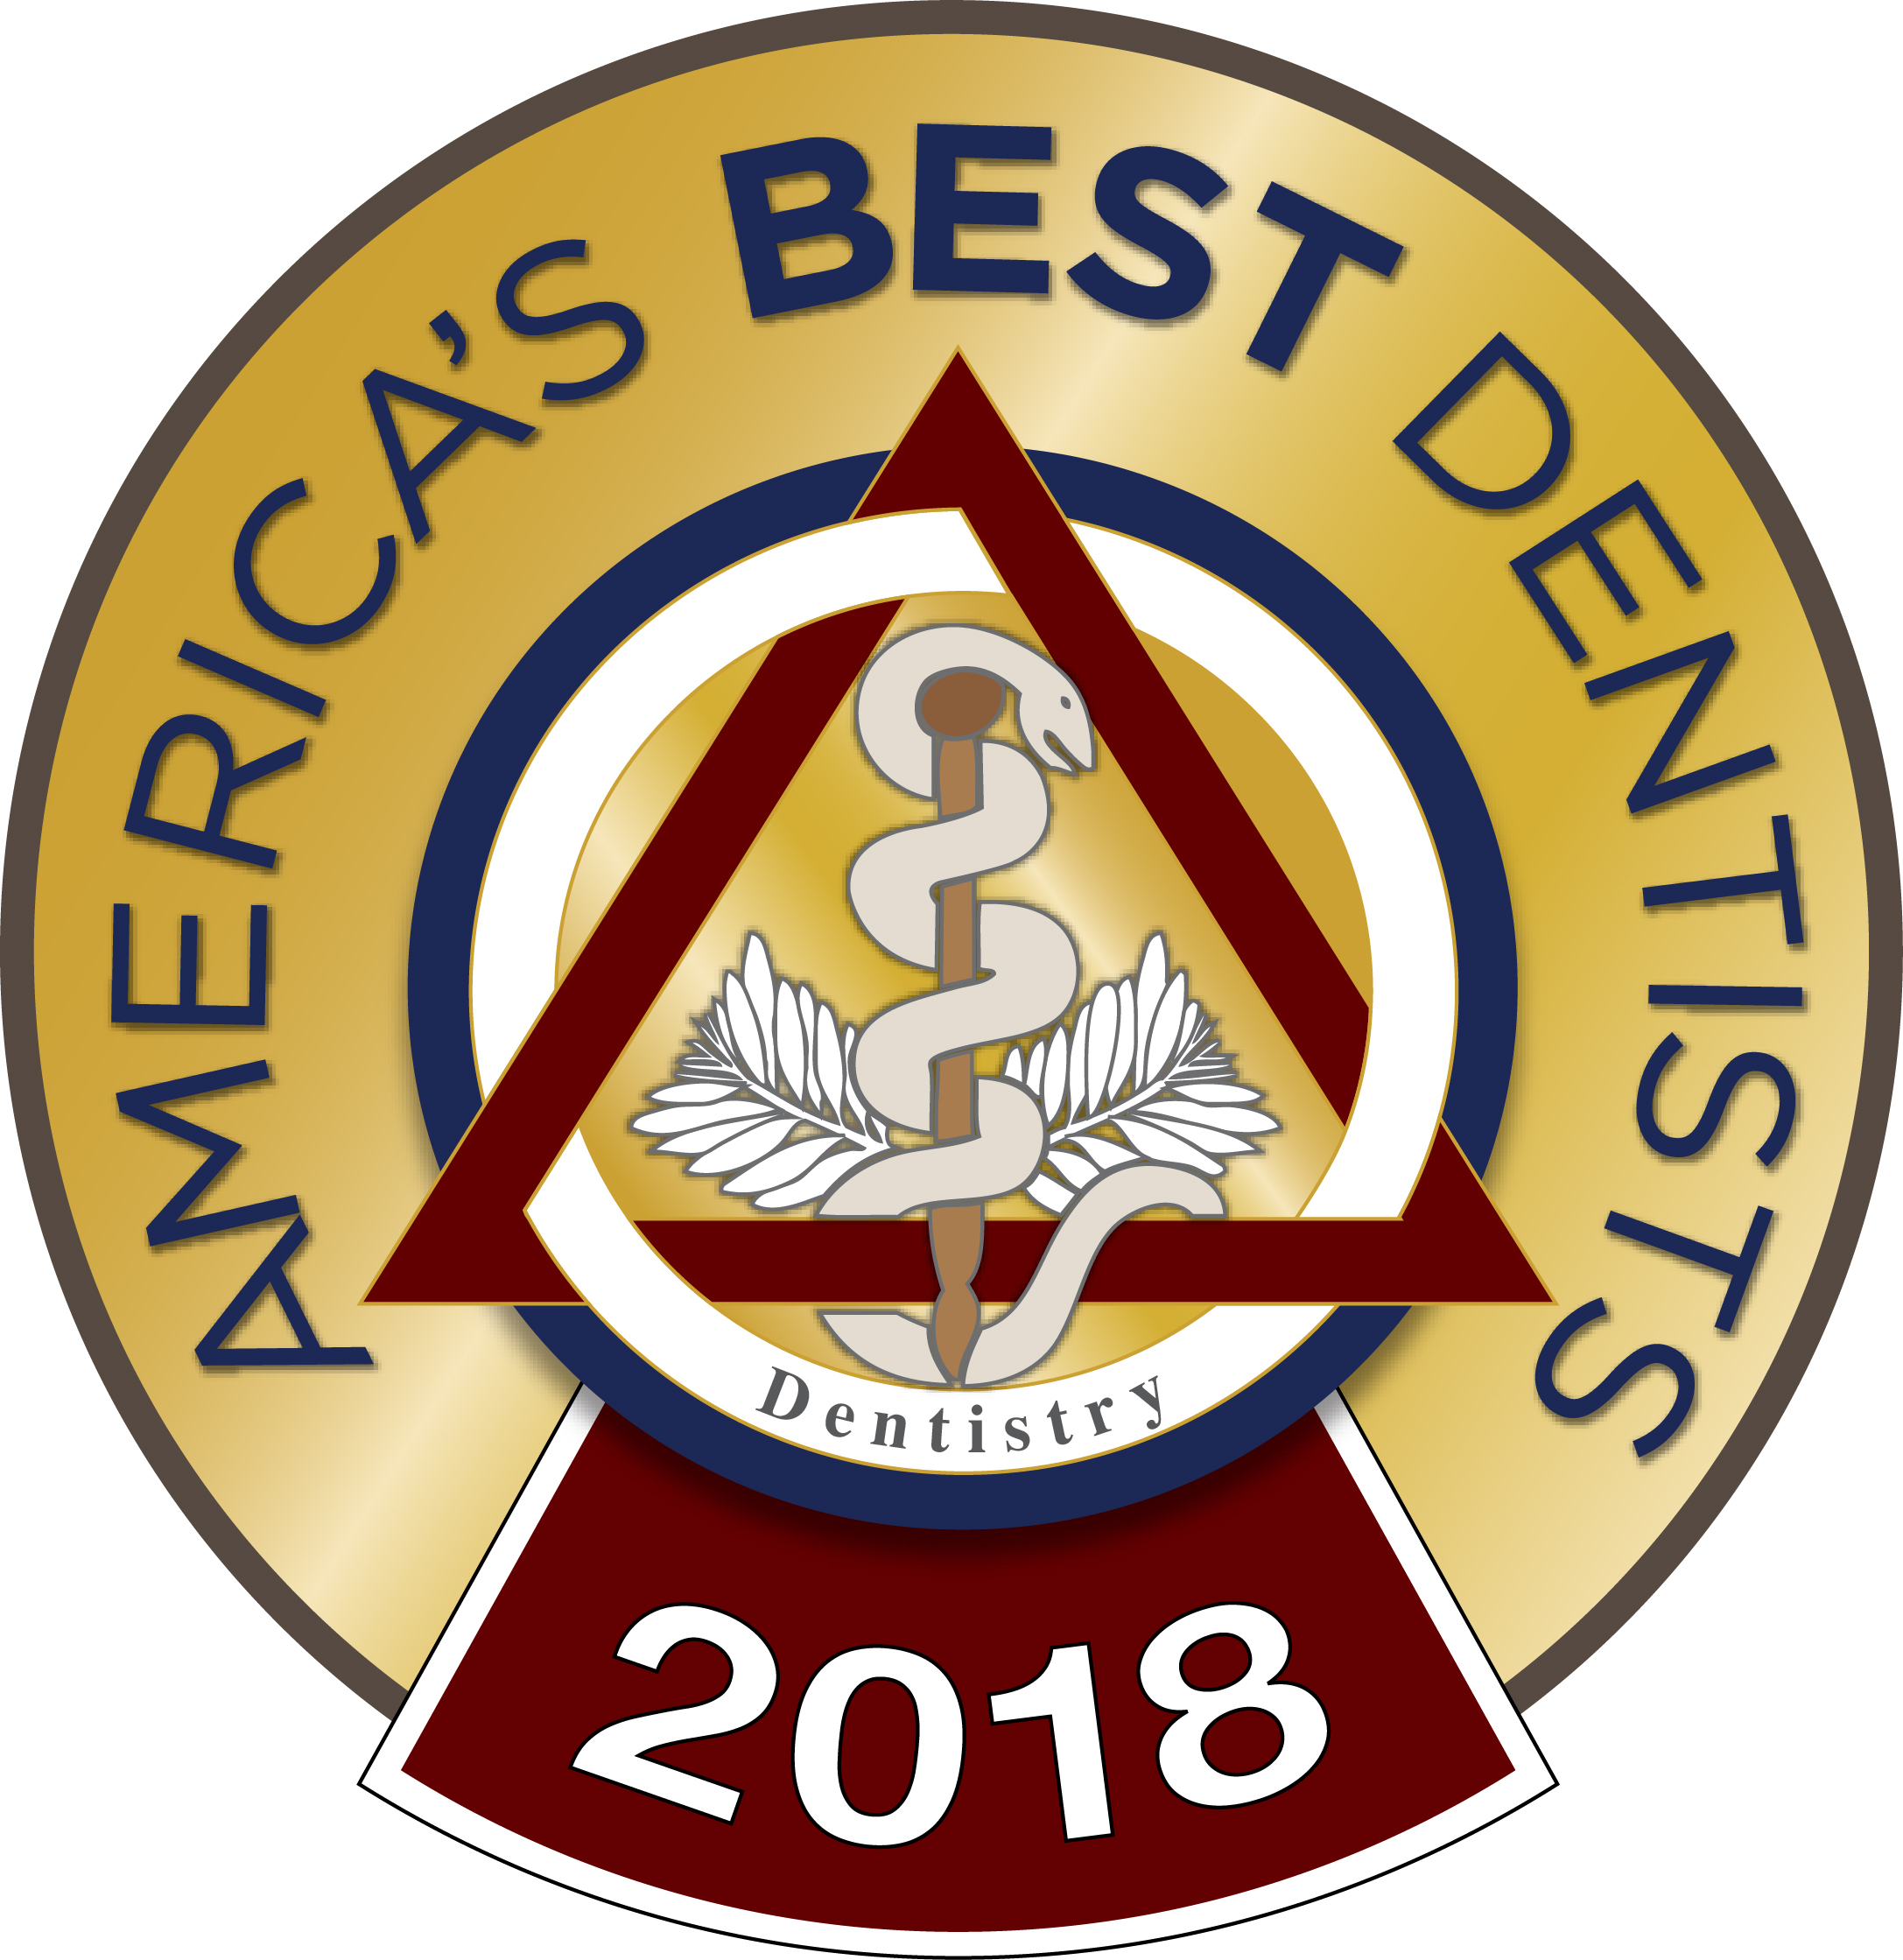 Best Dentist Logo